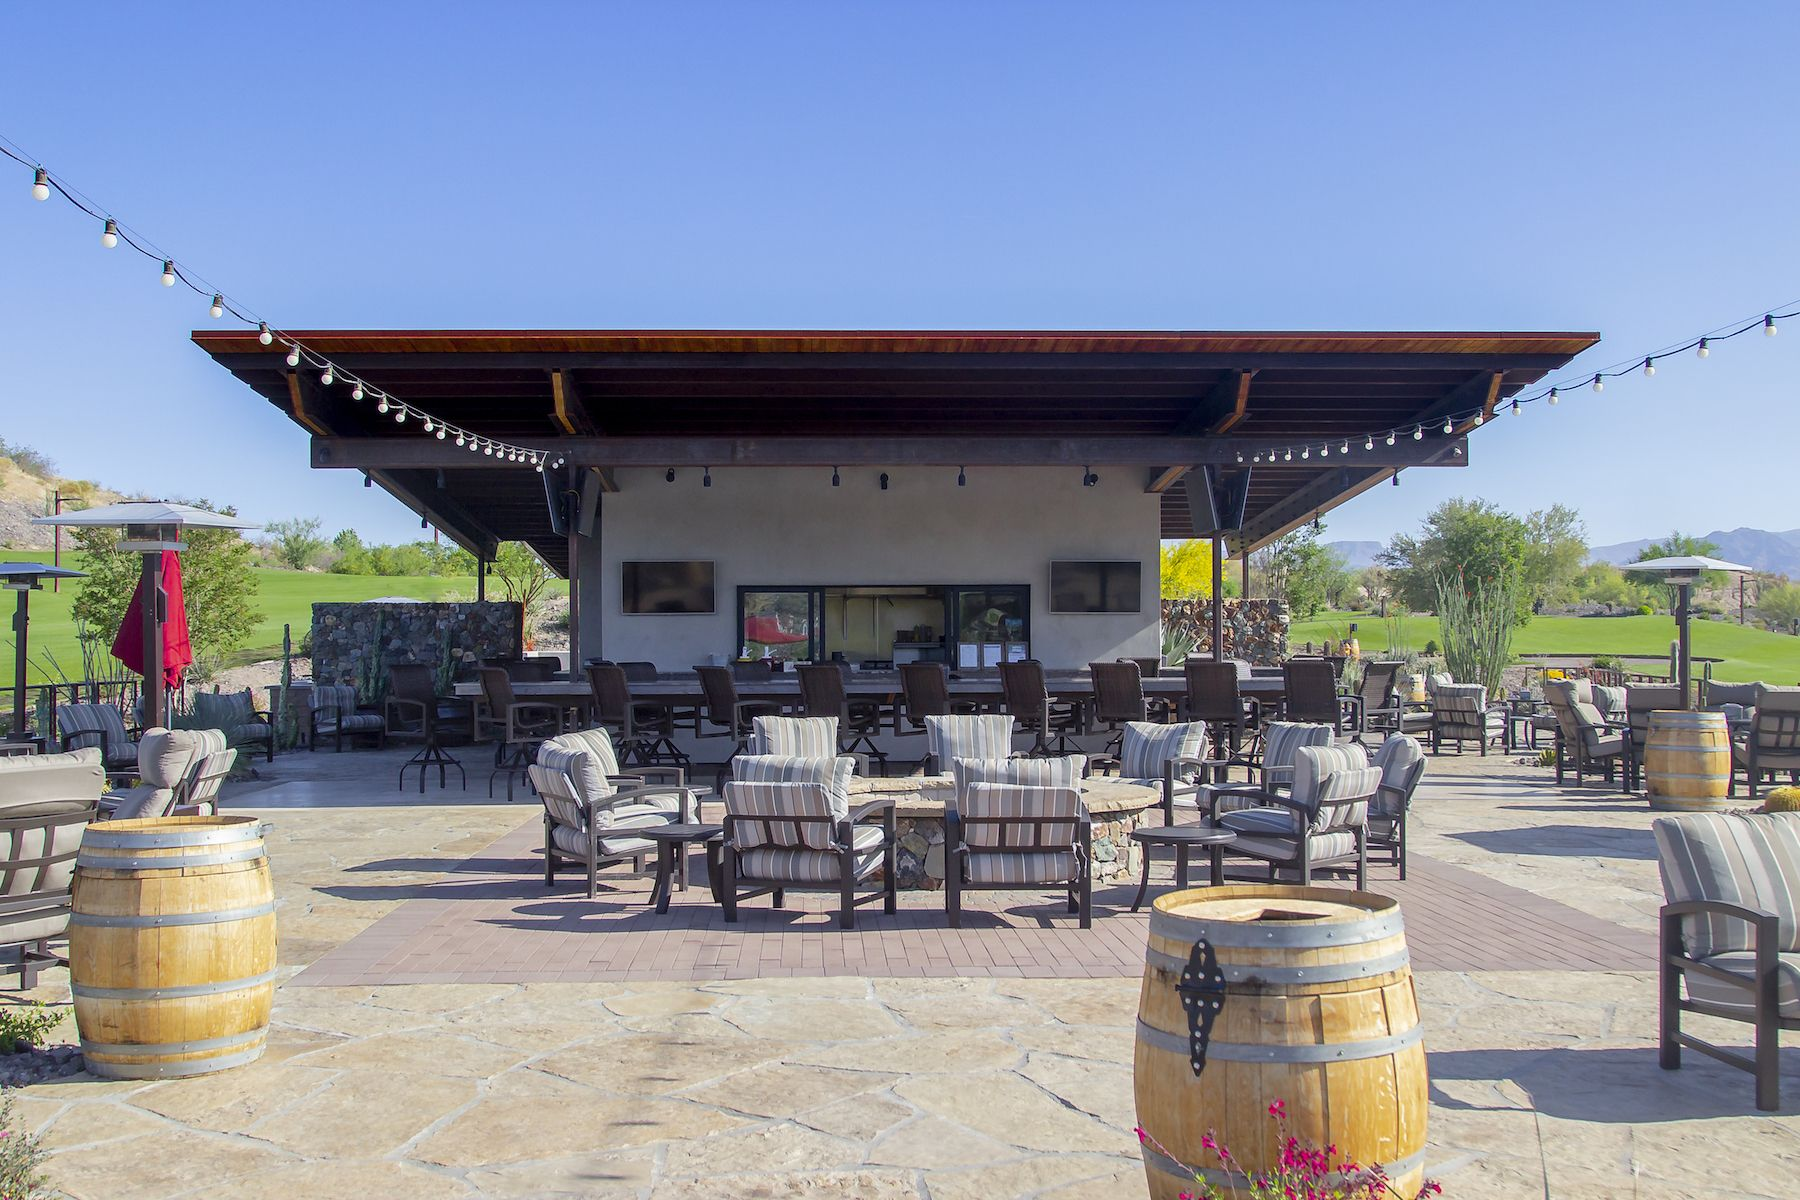 The Watering Hole At Wickenburg Ranch Golf Social Club As The Lounge For The Surrounding Space The Wa Wood Fire Pit Commercial Architecture Outdoor Living